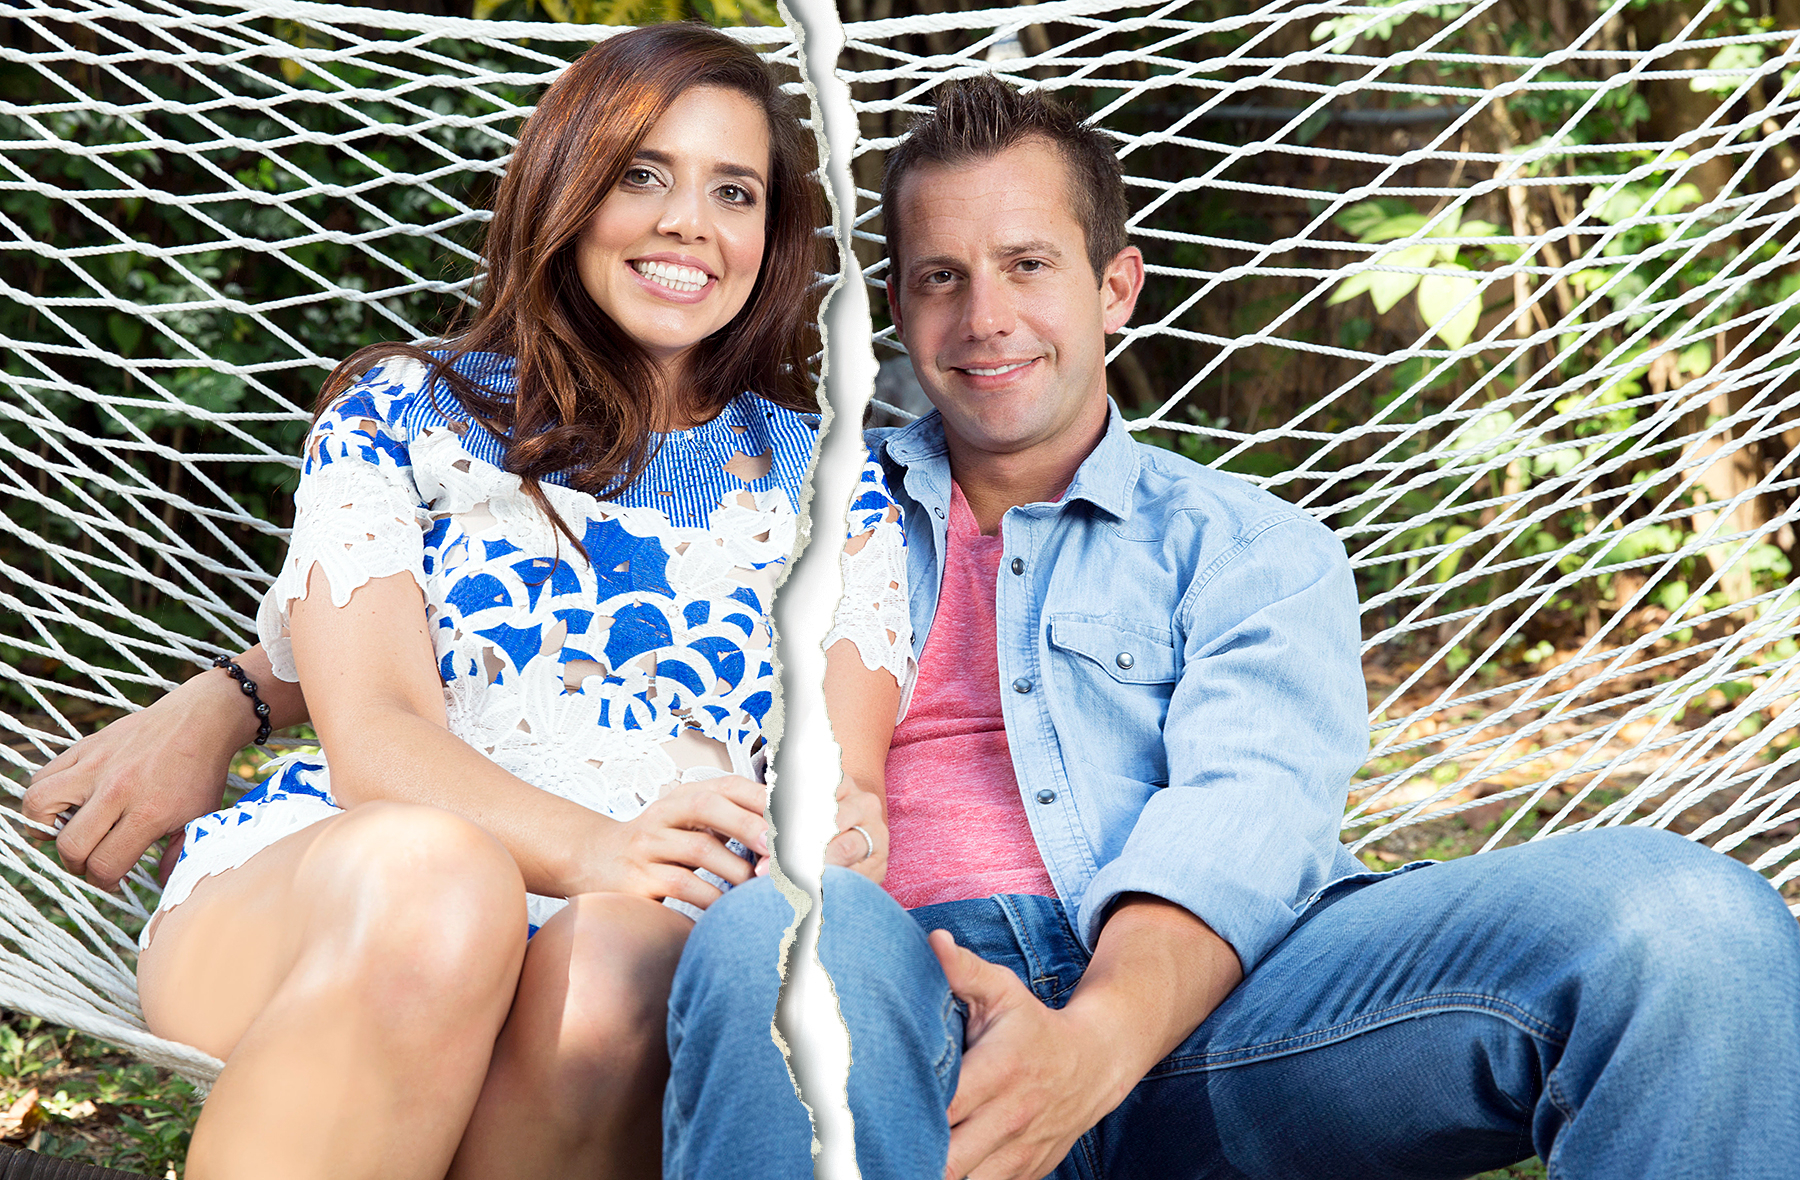 Sonia Granados Nick Pendergrast Married at First Sight